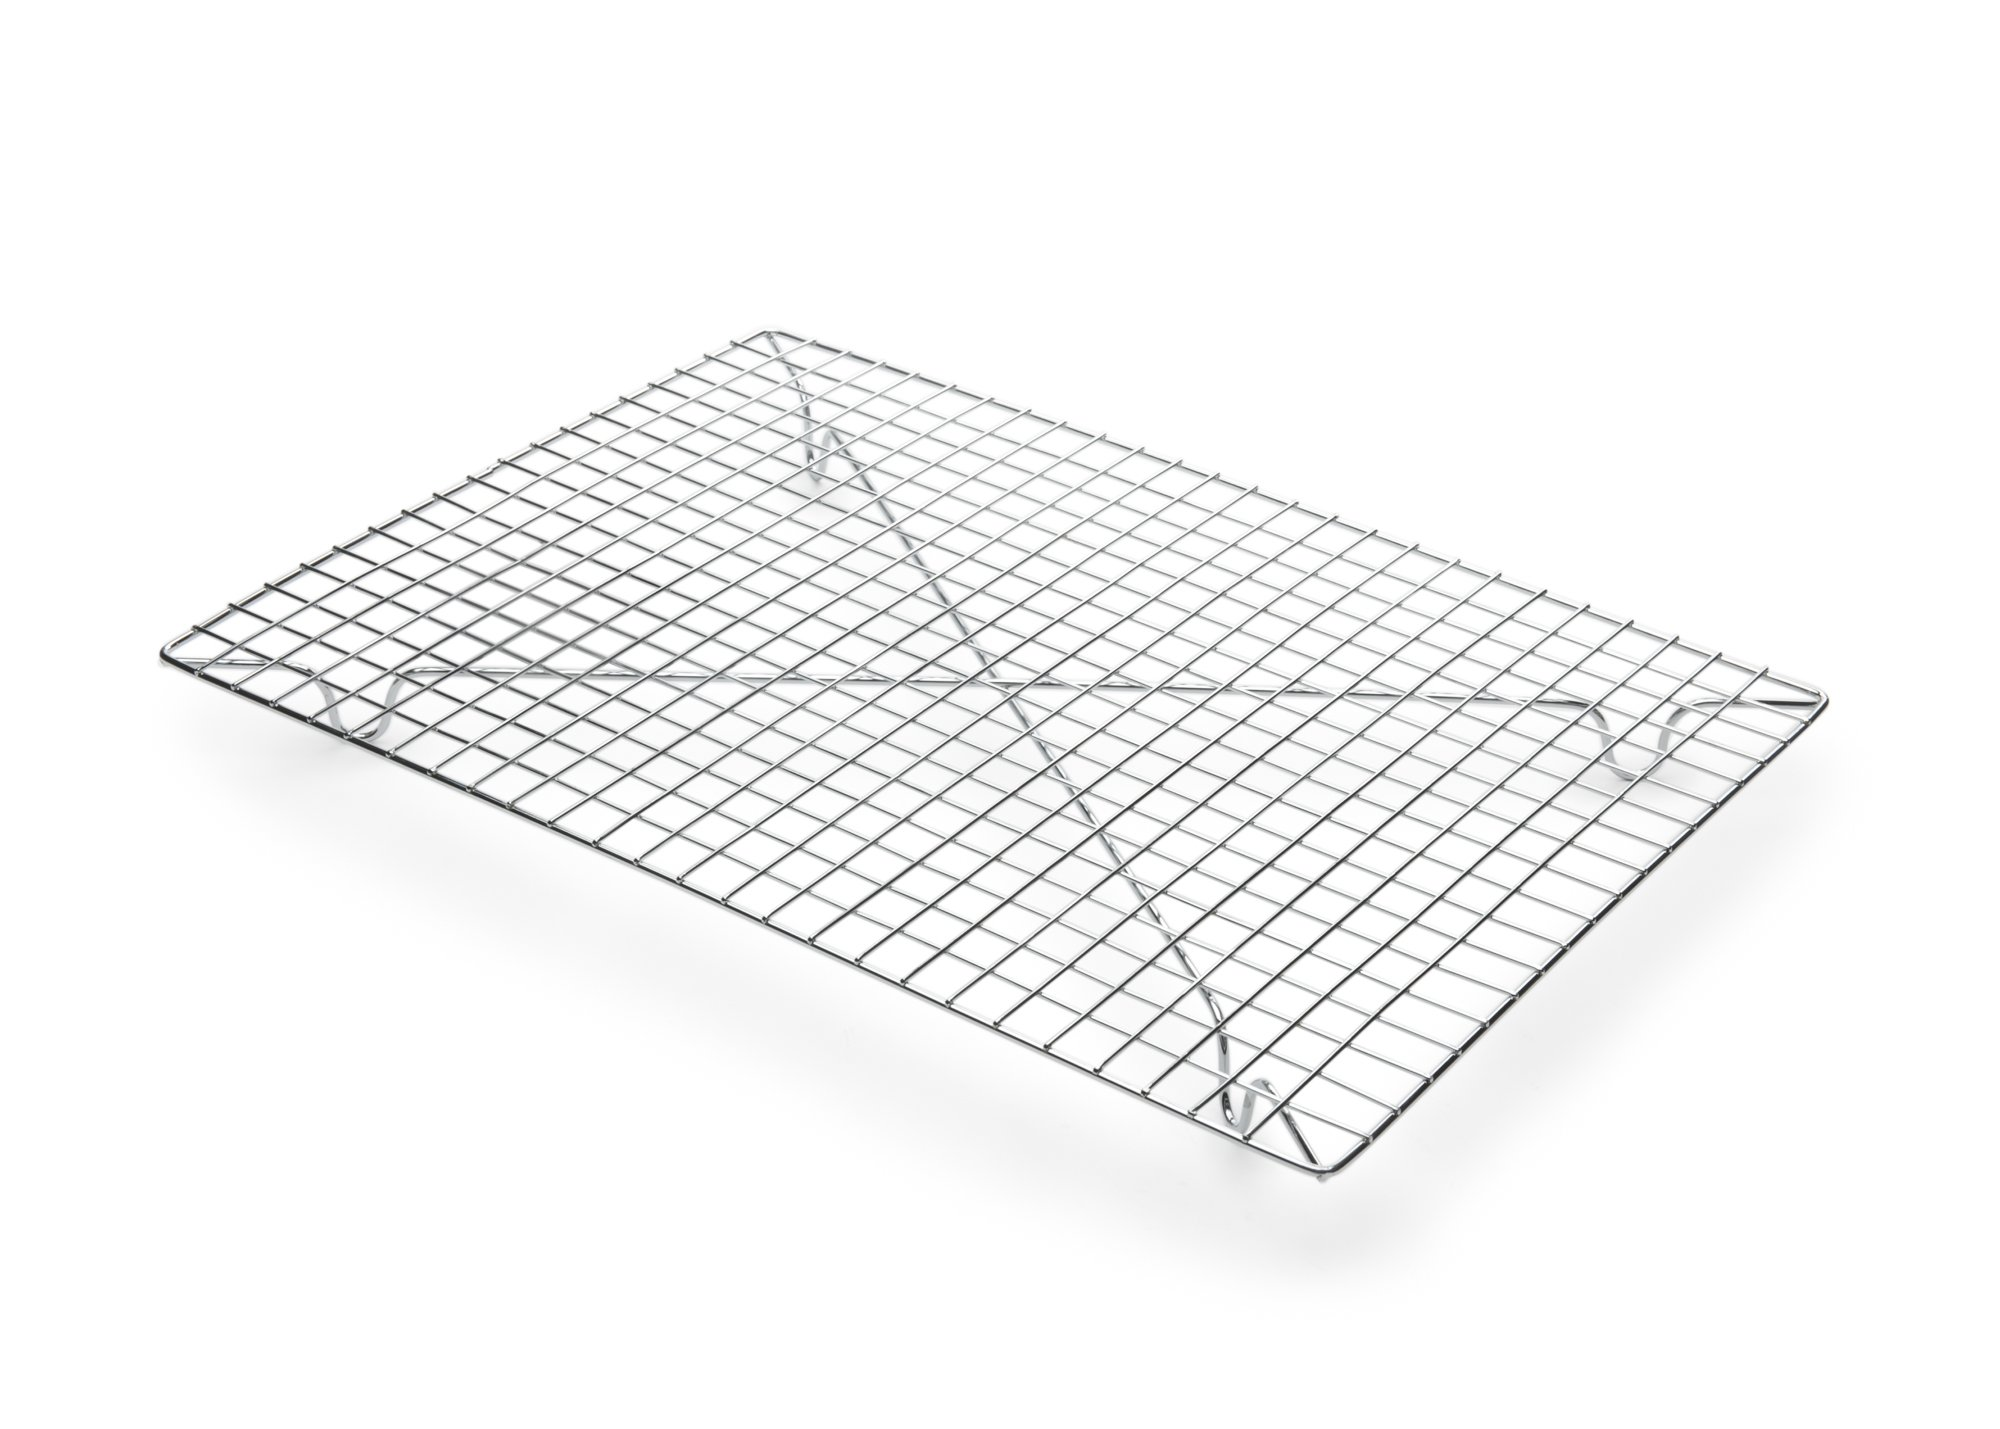 Fox Run 4694 Rectangular Cooling Rack, Iron/Chrome, 10-Inch x 14-Inch